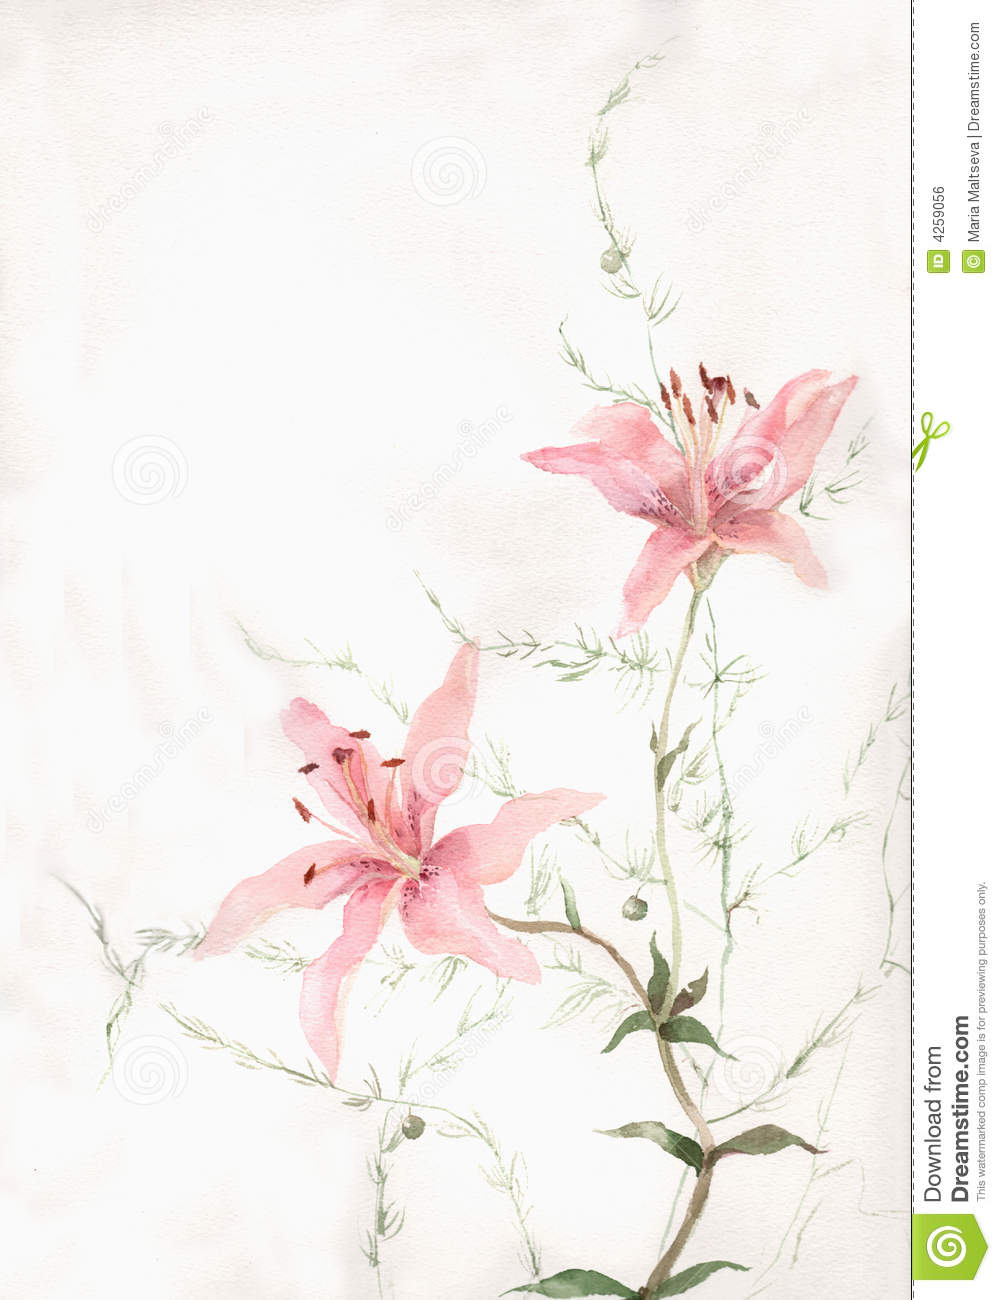 Pink lily flowers watercolor painting